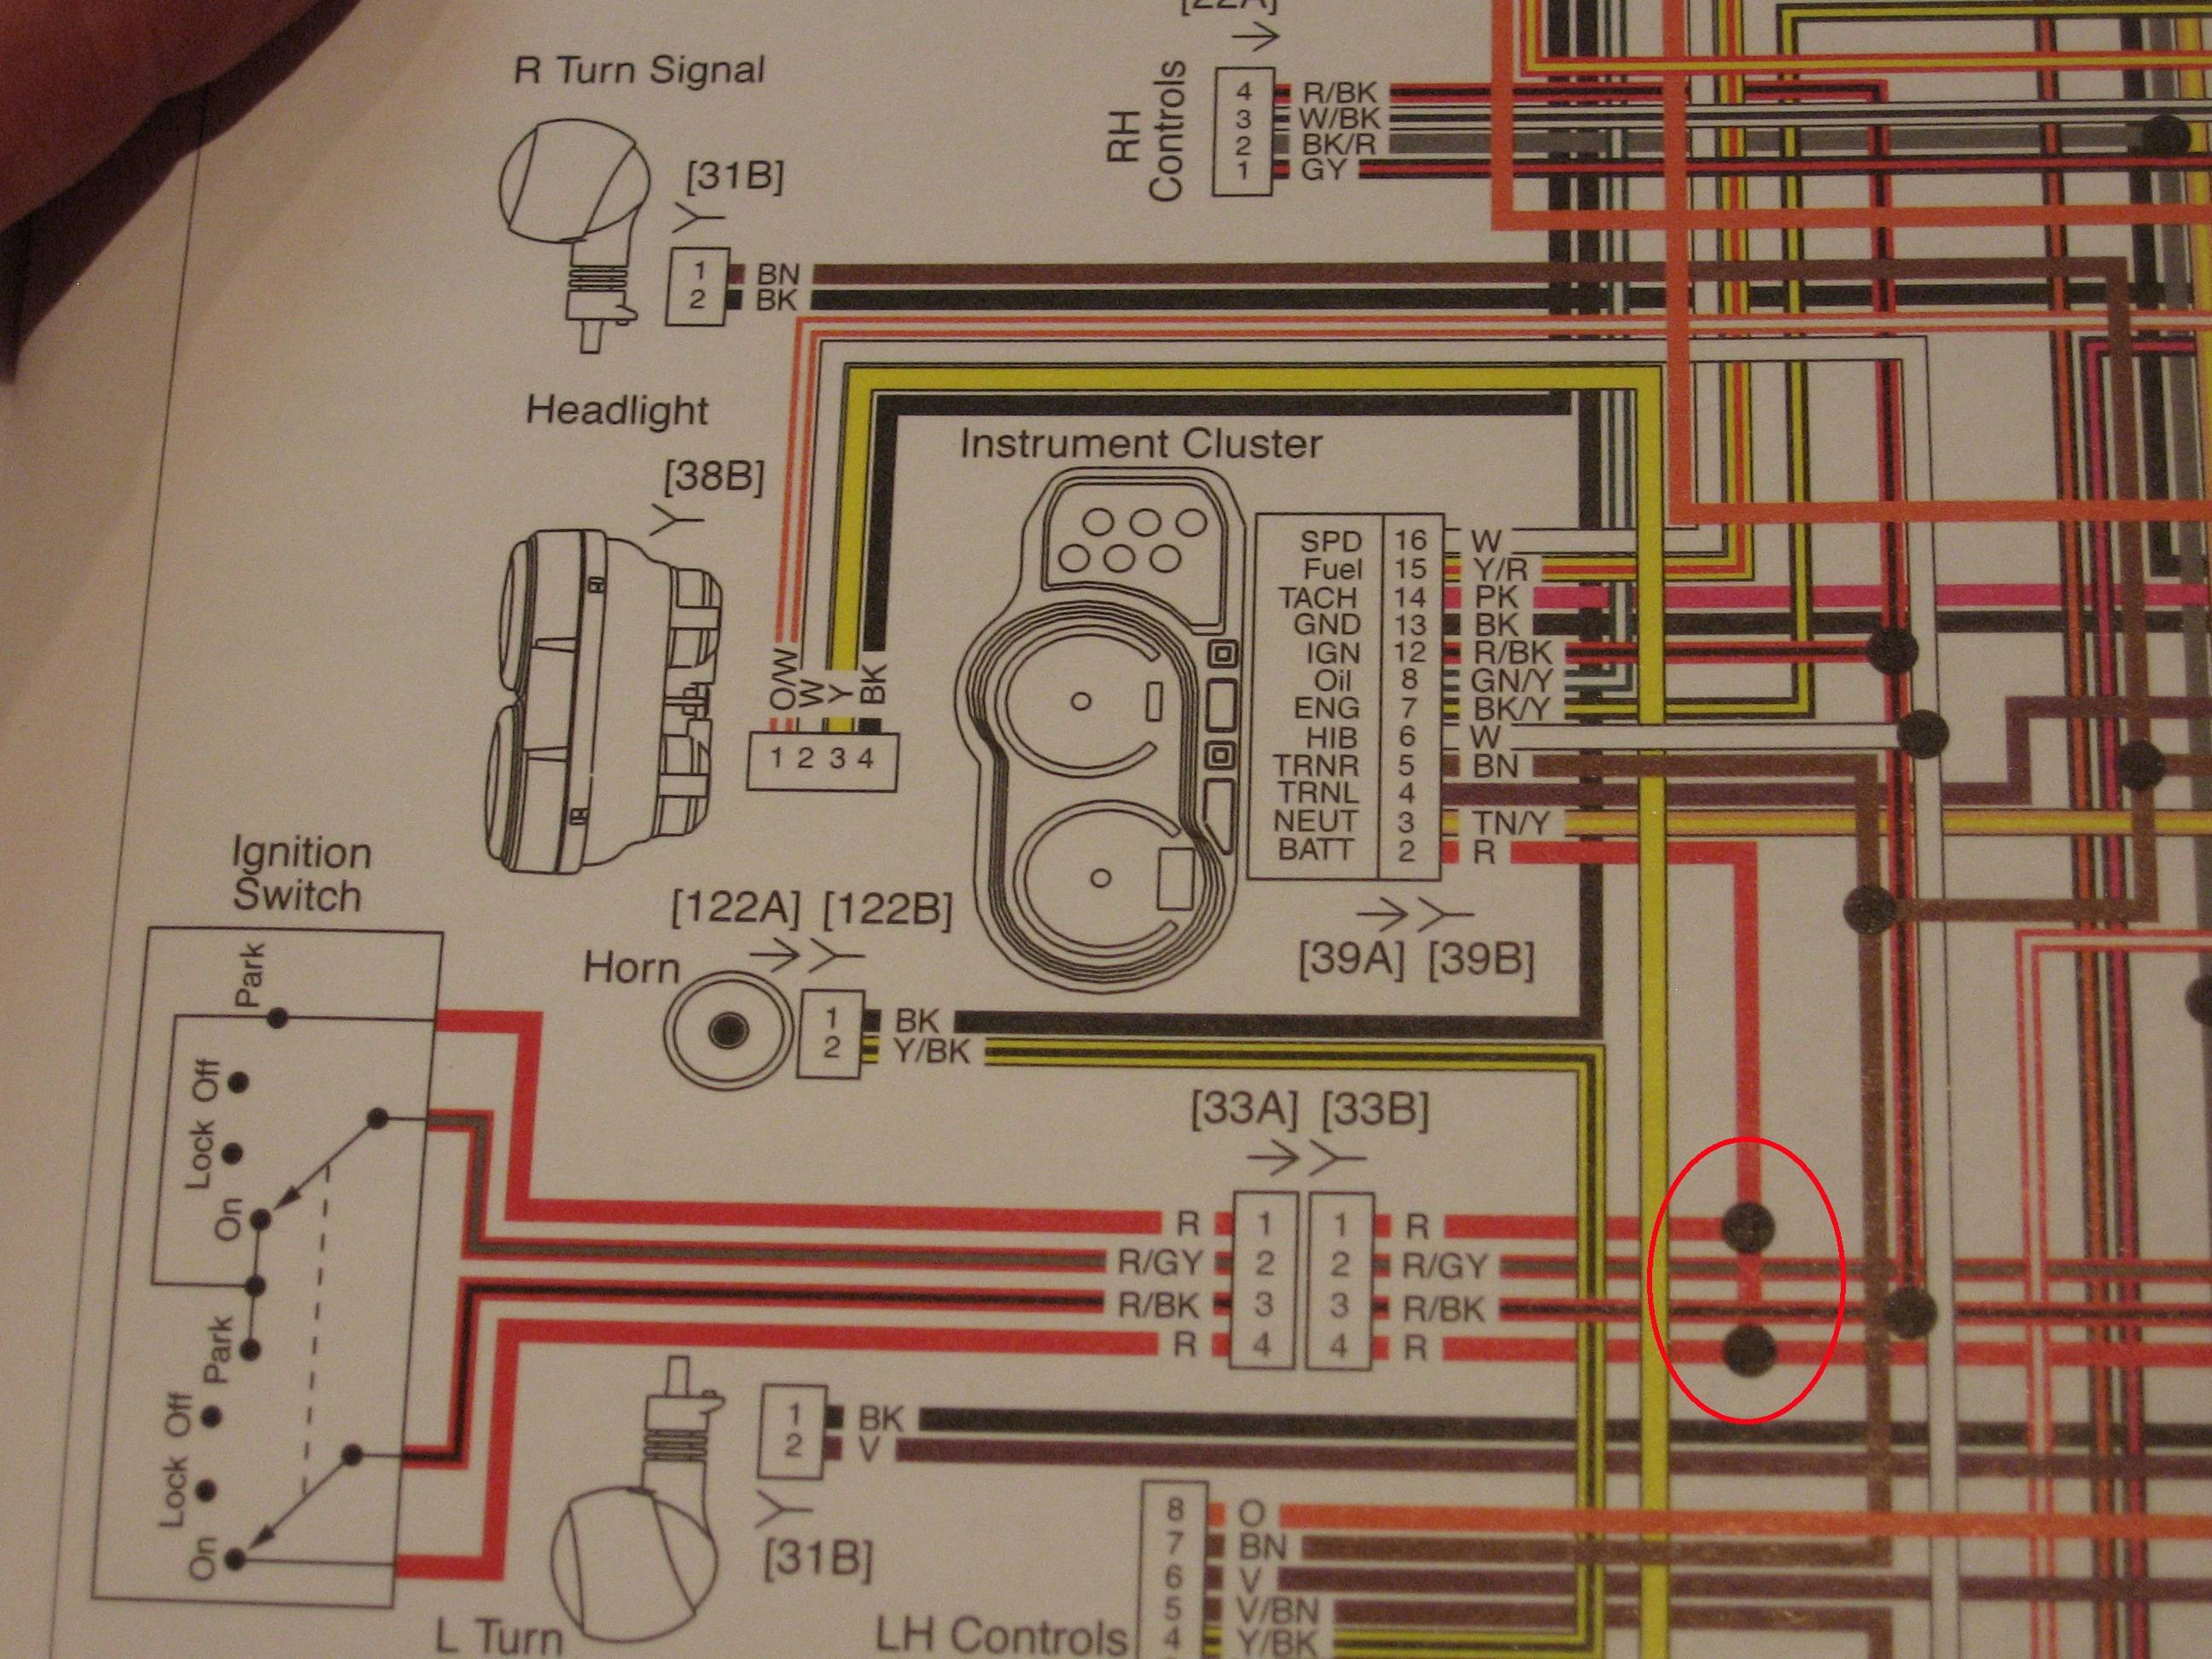 Buell Ignition Wiring Diagram - Wiring Diagram Data seek-activity -  seek-activity.portorhoca.it | 1998 Buell Wiring Diagram |  | seek-activity.portorhoca.it